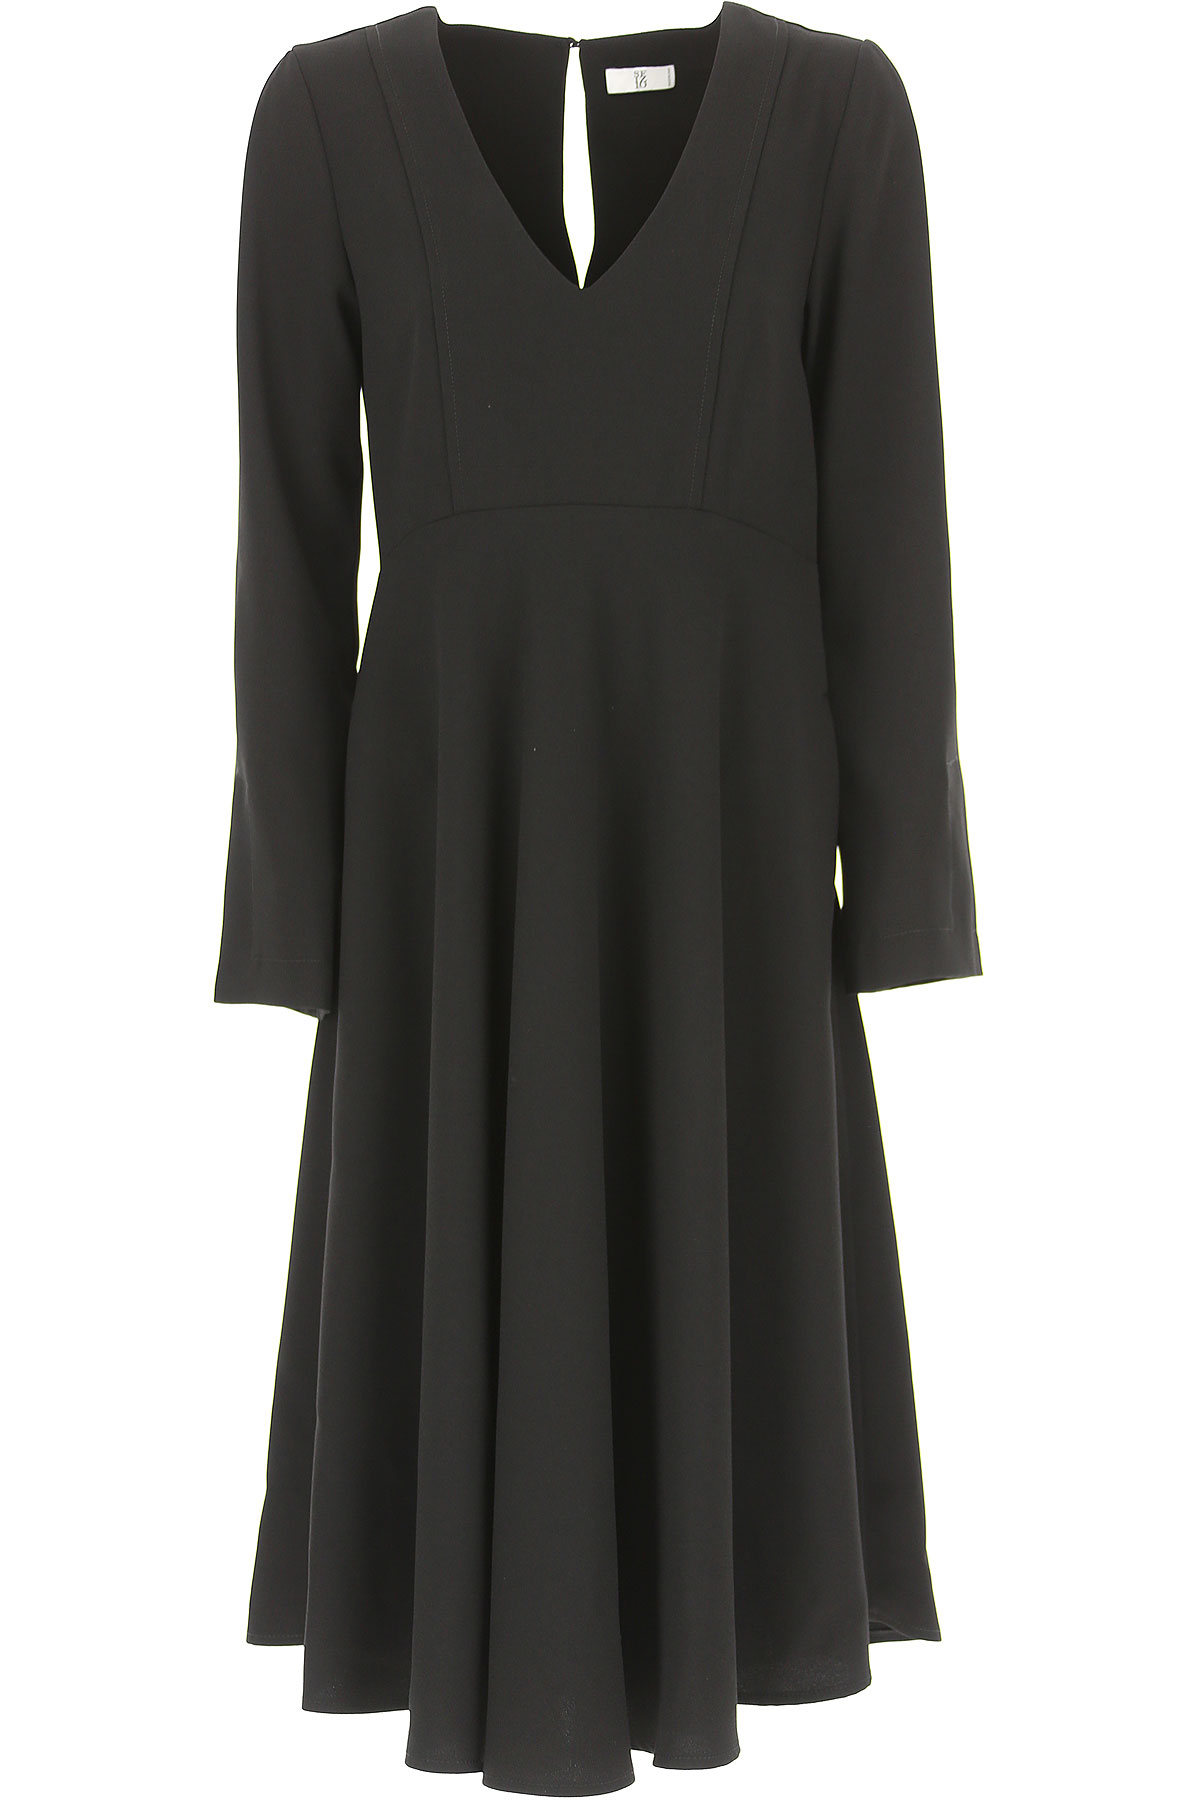 Image of Sfizio Dress for Women, Evening Cocktail Party, Black, polyester, 2017, 12 6 8